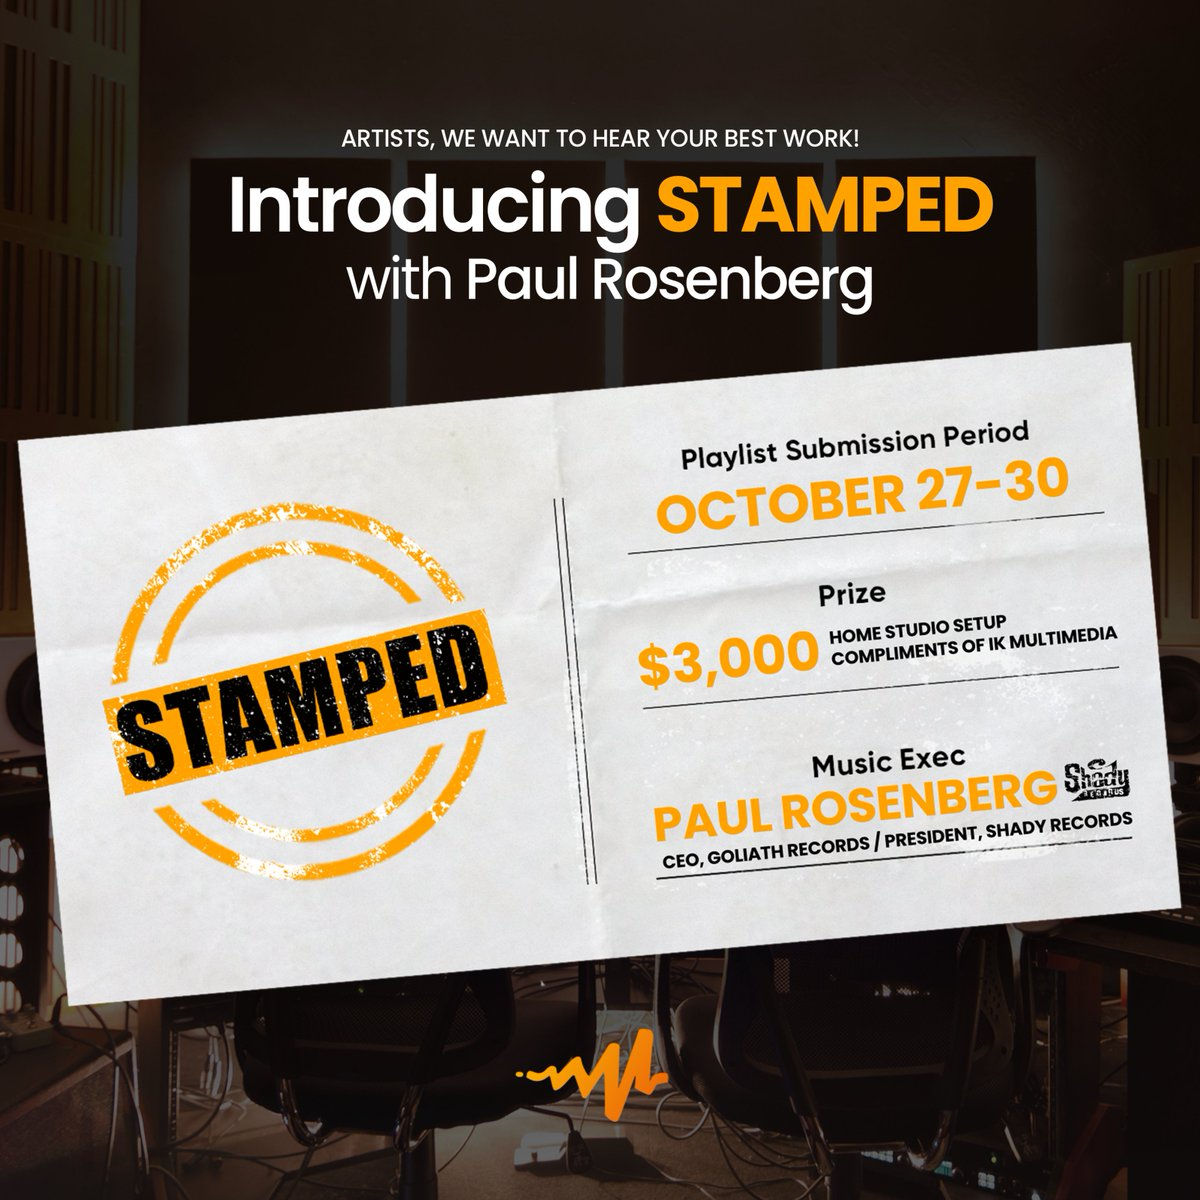 Paul wants to hear your bars but they better be good 💀 TRUST ME.  Hit up @rosenberg via the @audiomack  #STAMPED contest and learn more on their site -